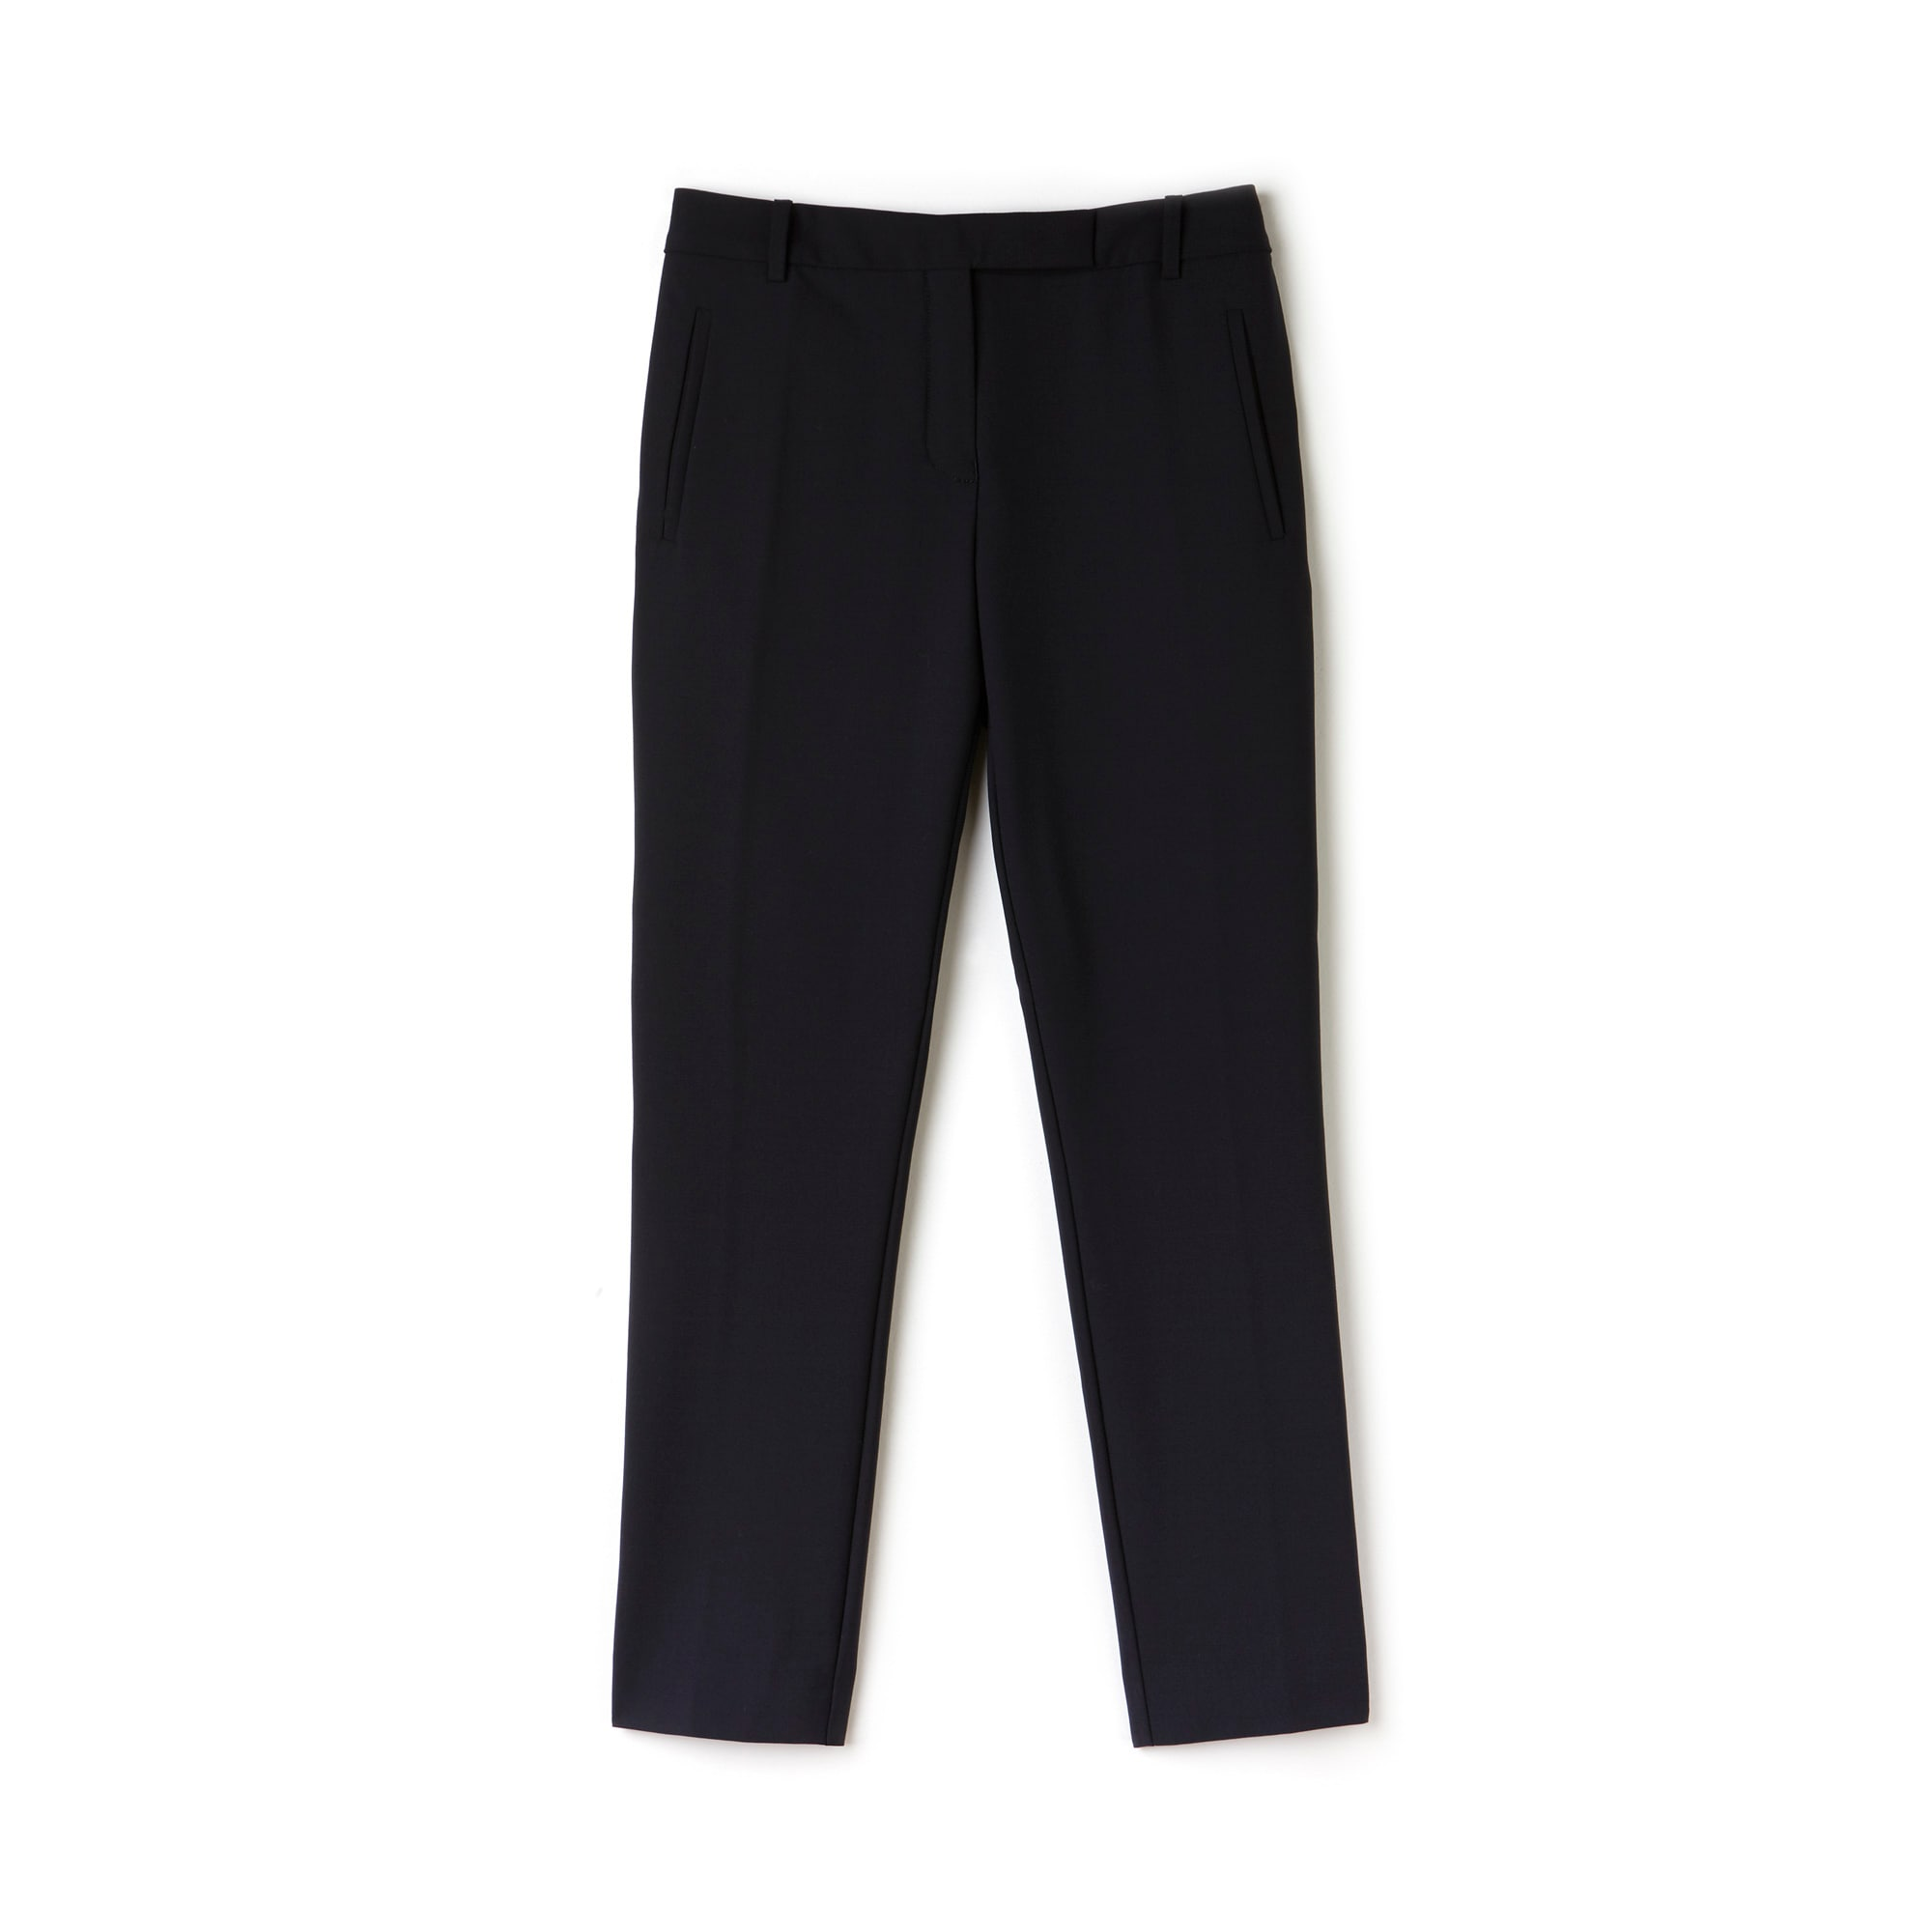 Women's Wool Pants